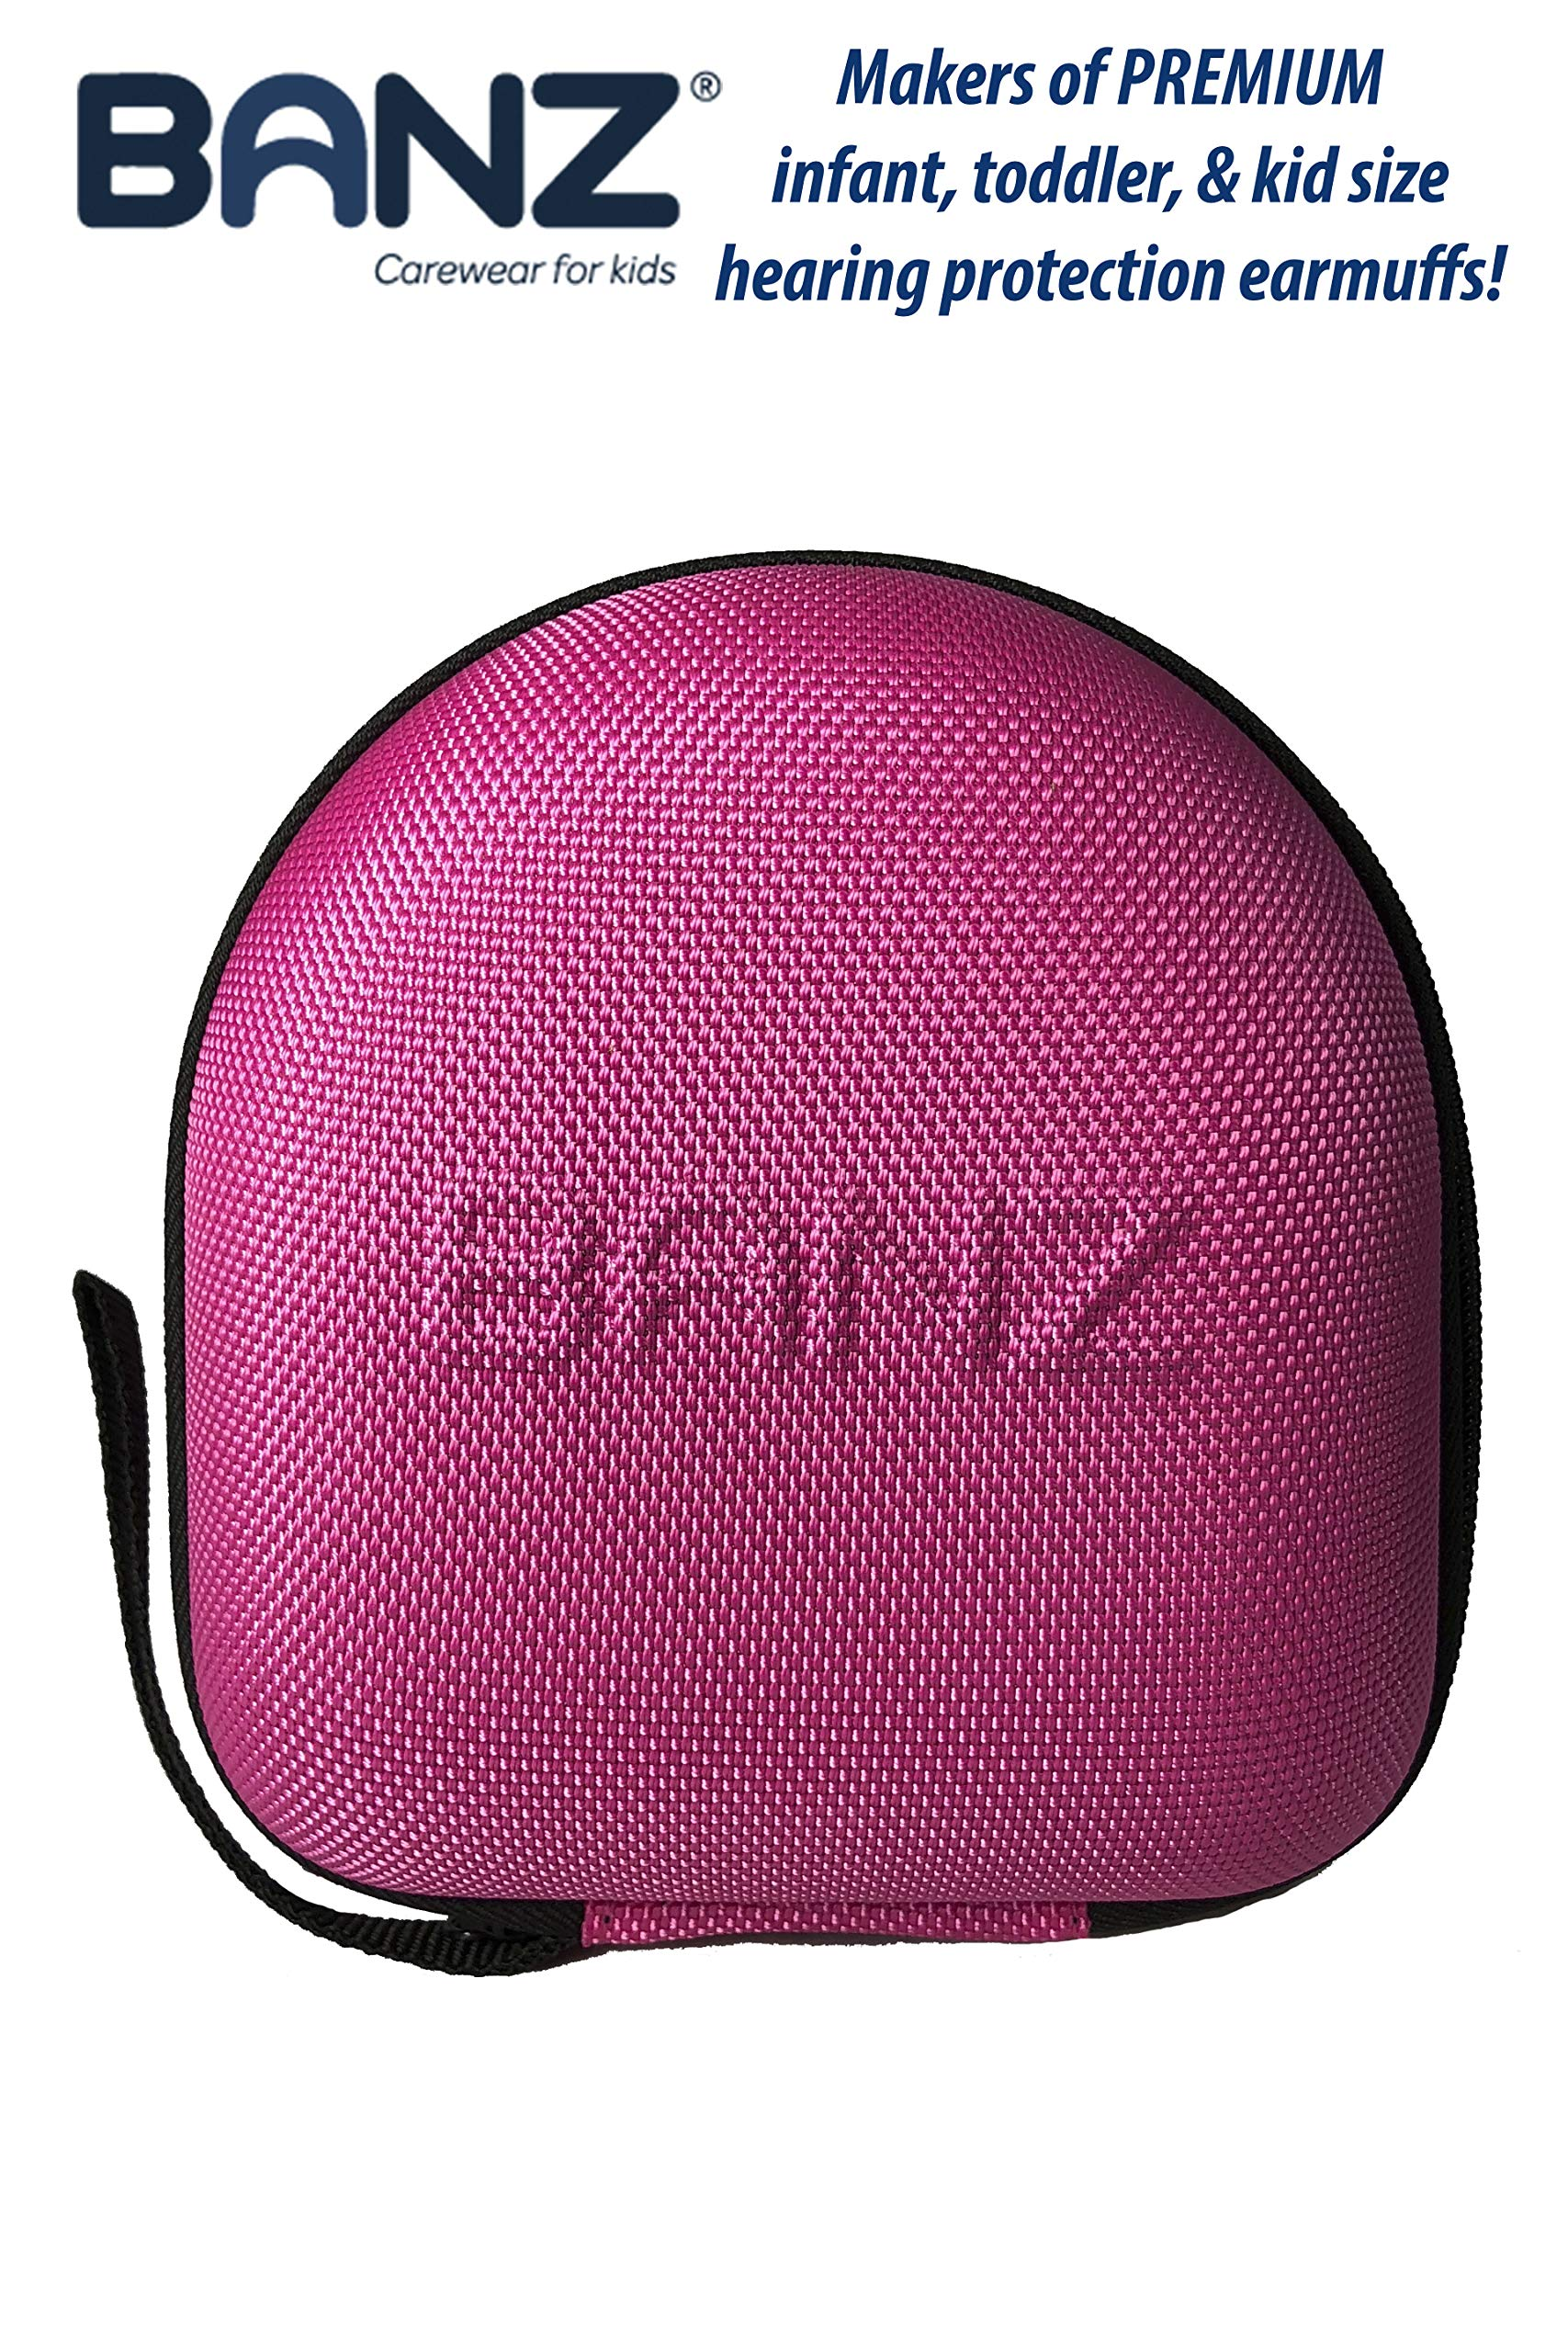 Banz Kids Earmuffs CASE (NOT Baby Size) - Protective Premium Hard EVA Case - Holds BANZ Kids Size Headphones - Protect Children Hearing Earmuffs - Travel Case (Pink)